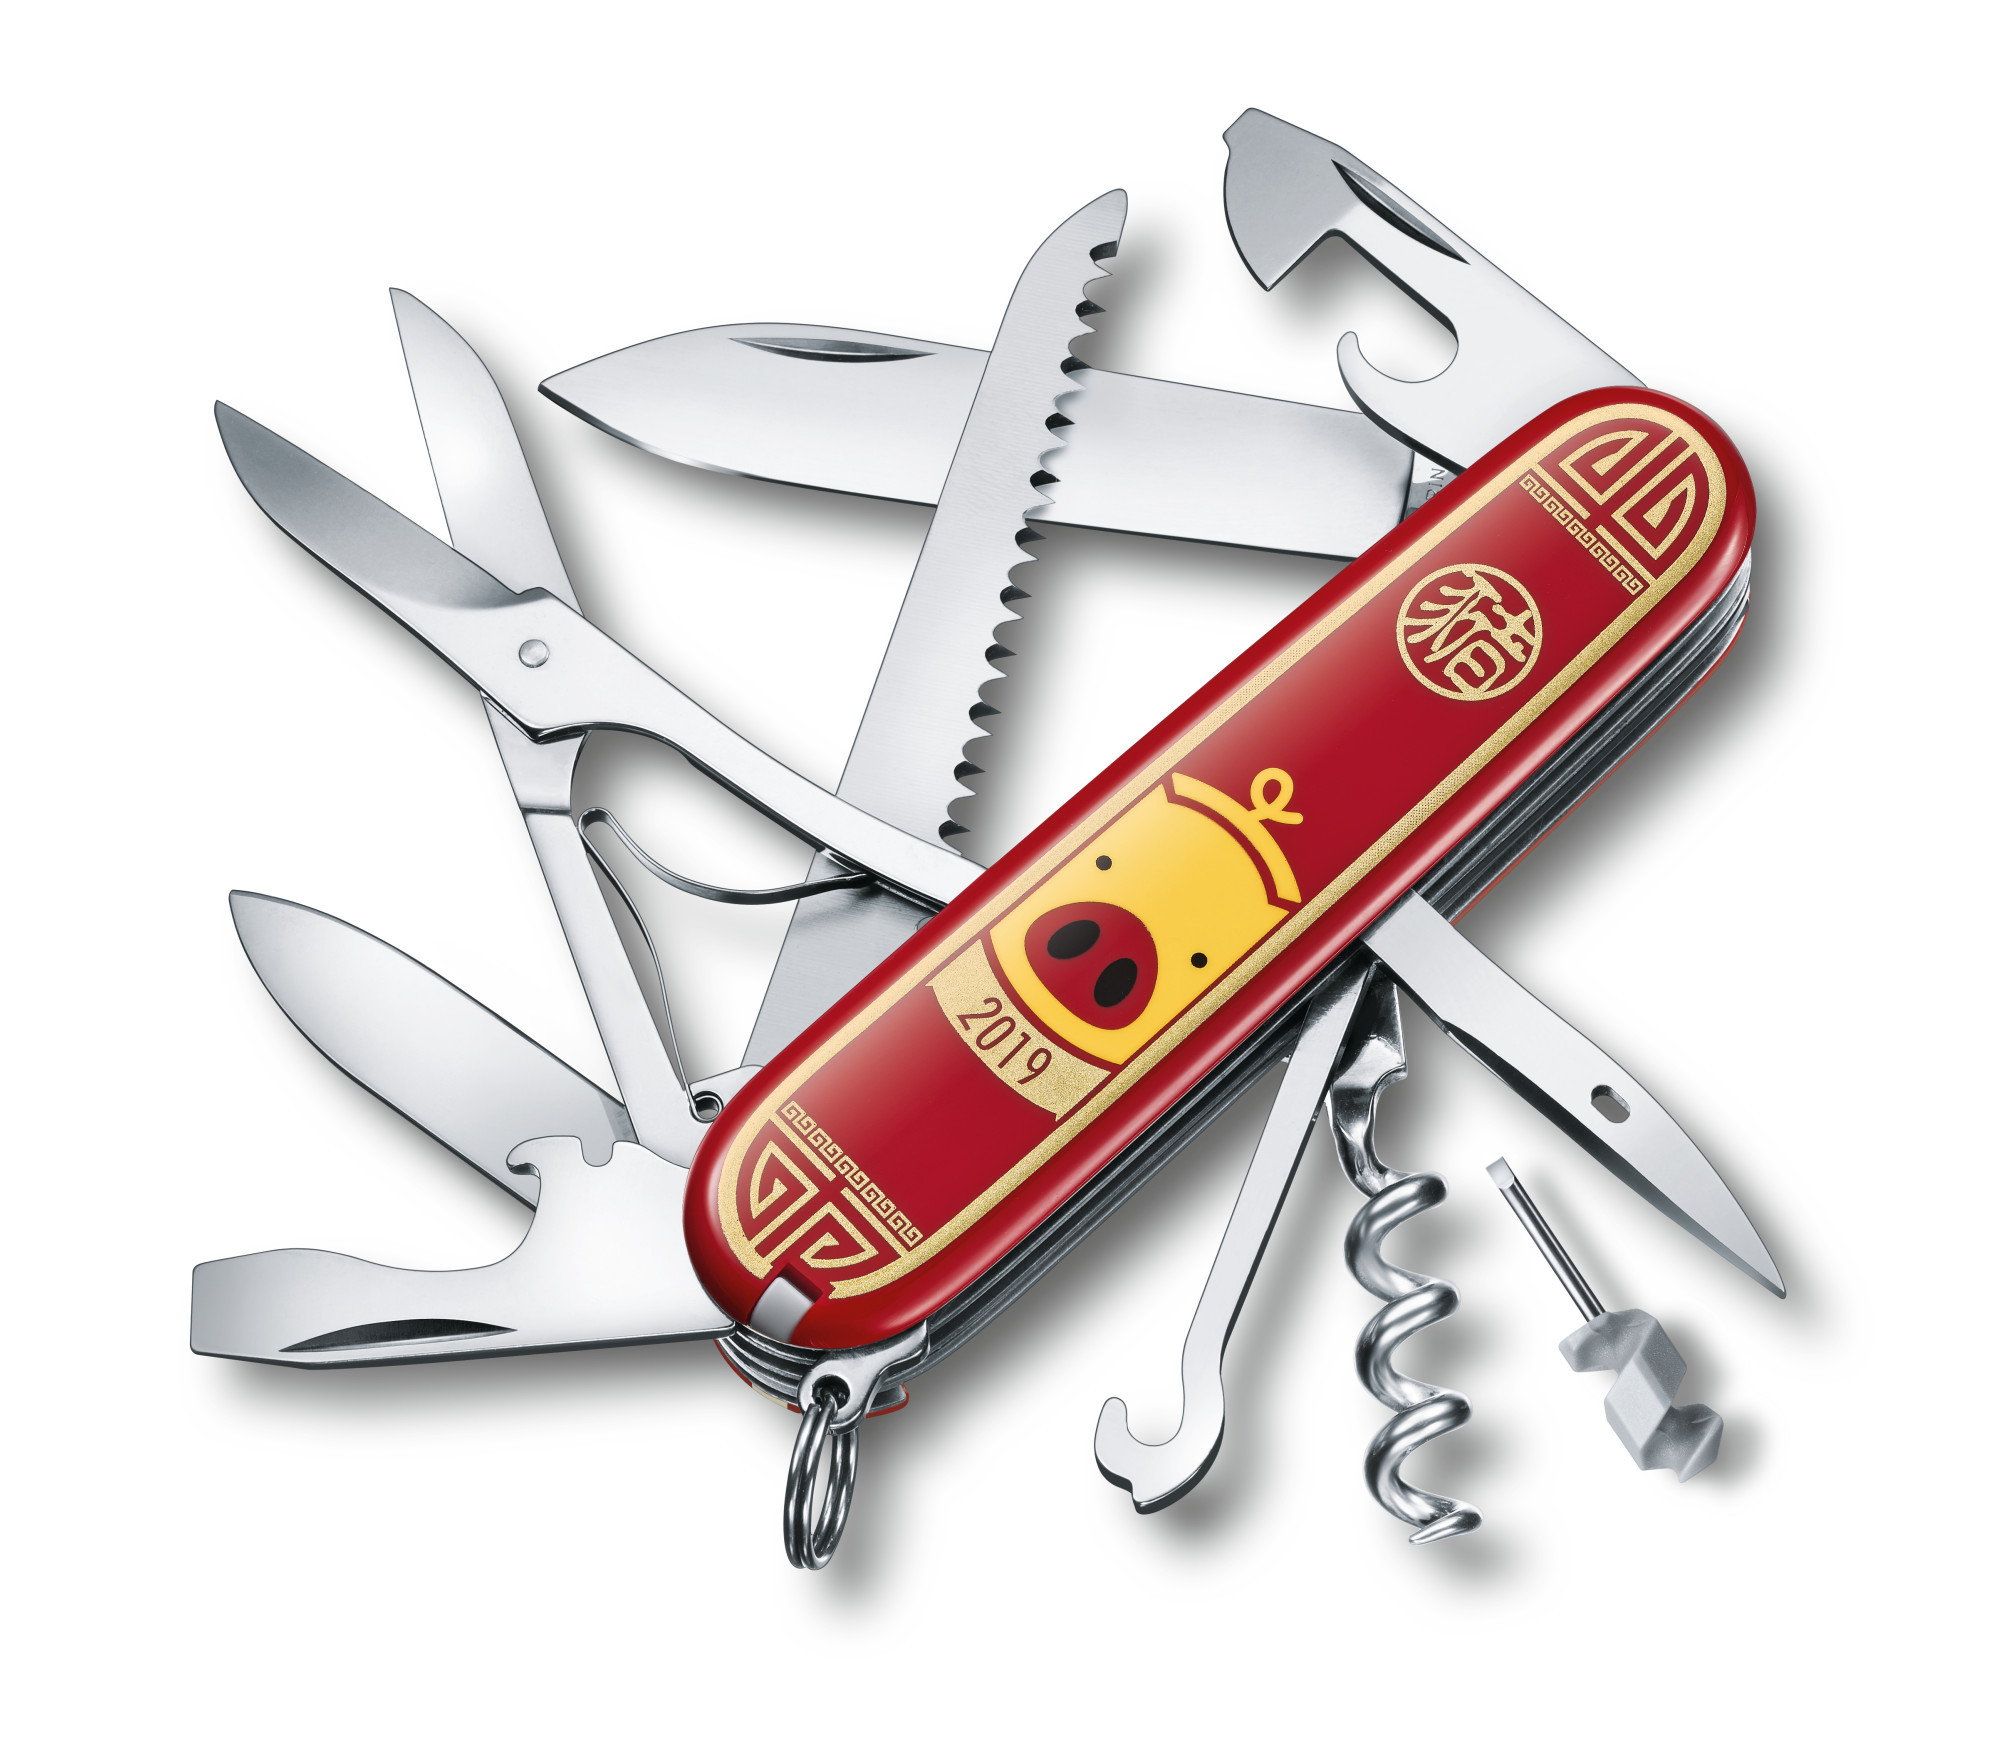 Складной нож Victorinox Huntsman Year of the Pig 2019 (1.3714.E8) limited edition - Wenger-Victorinox.Ru